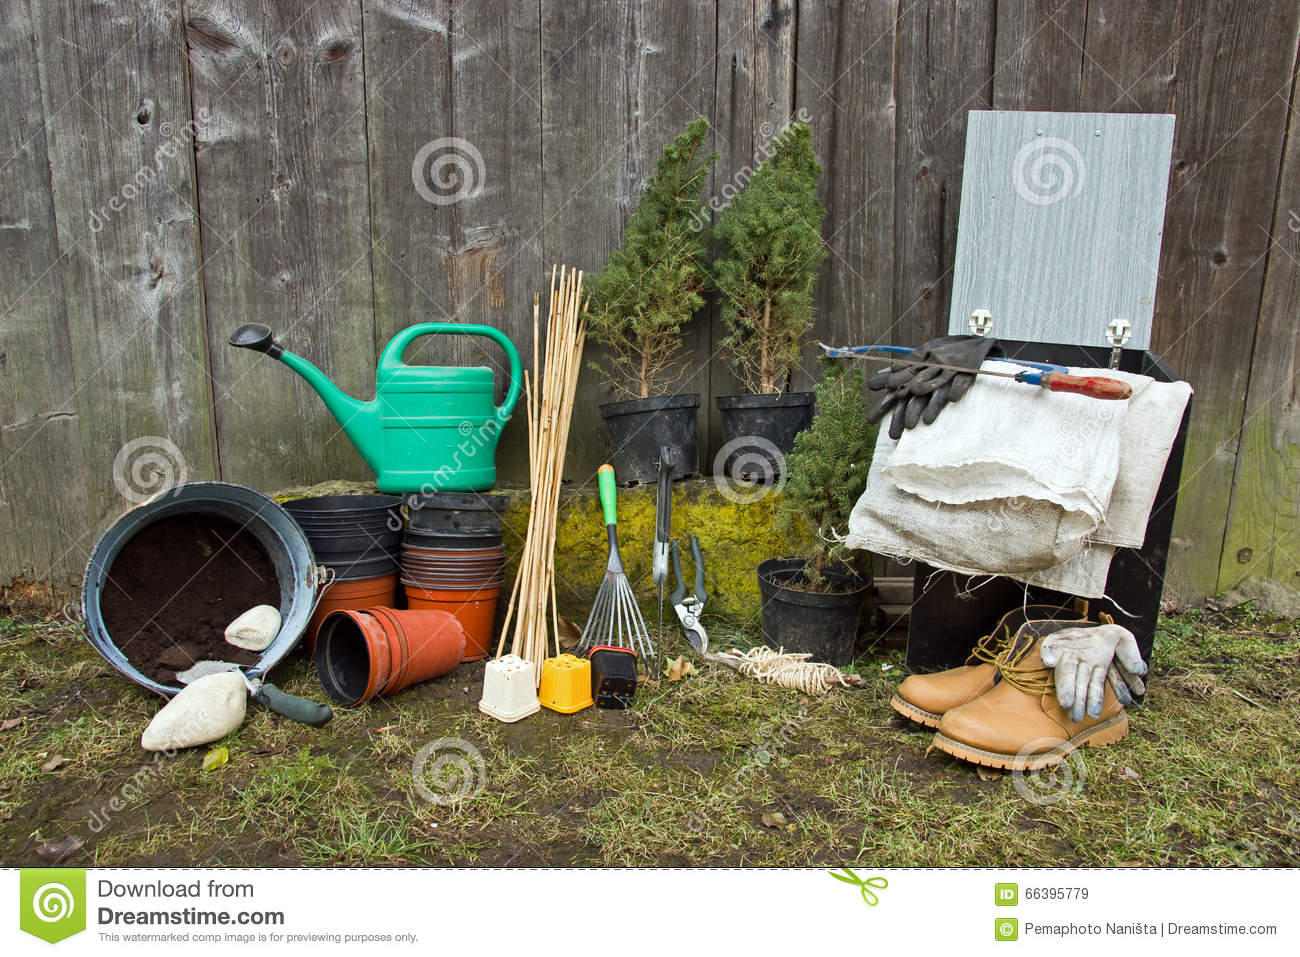 Gardening tools stock image 66395779 for Gardening tools watering